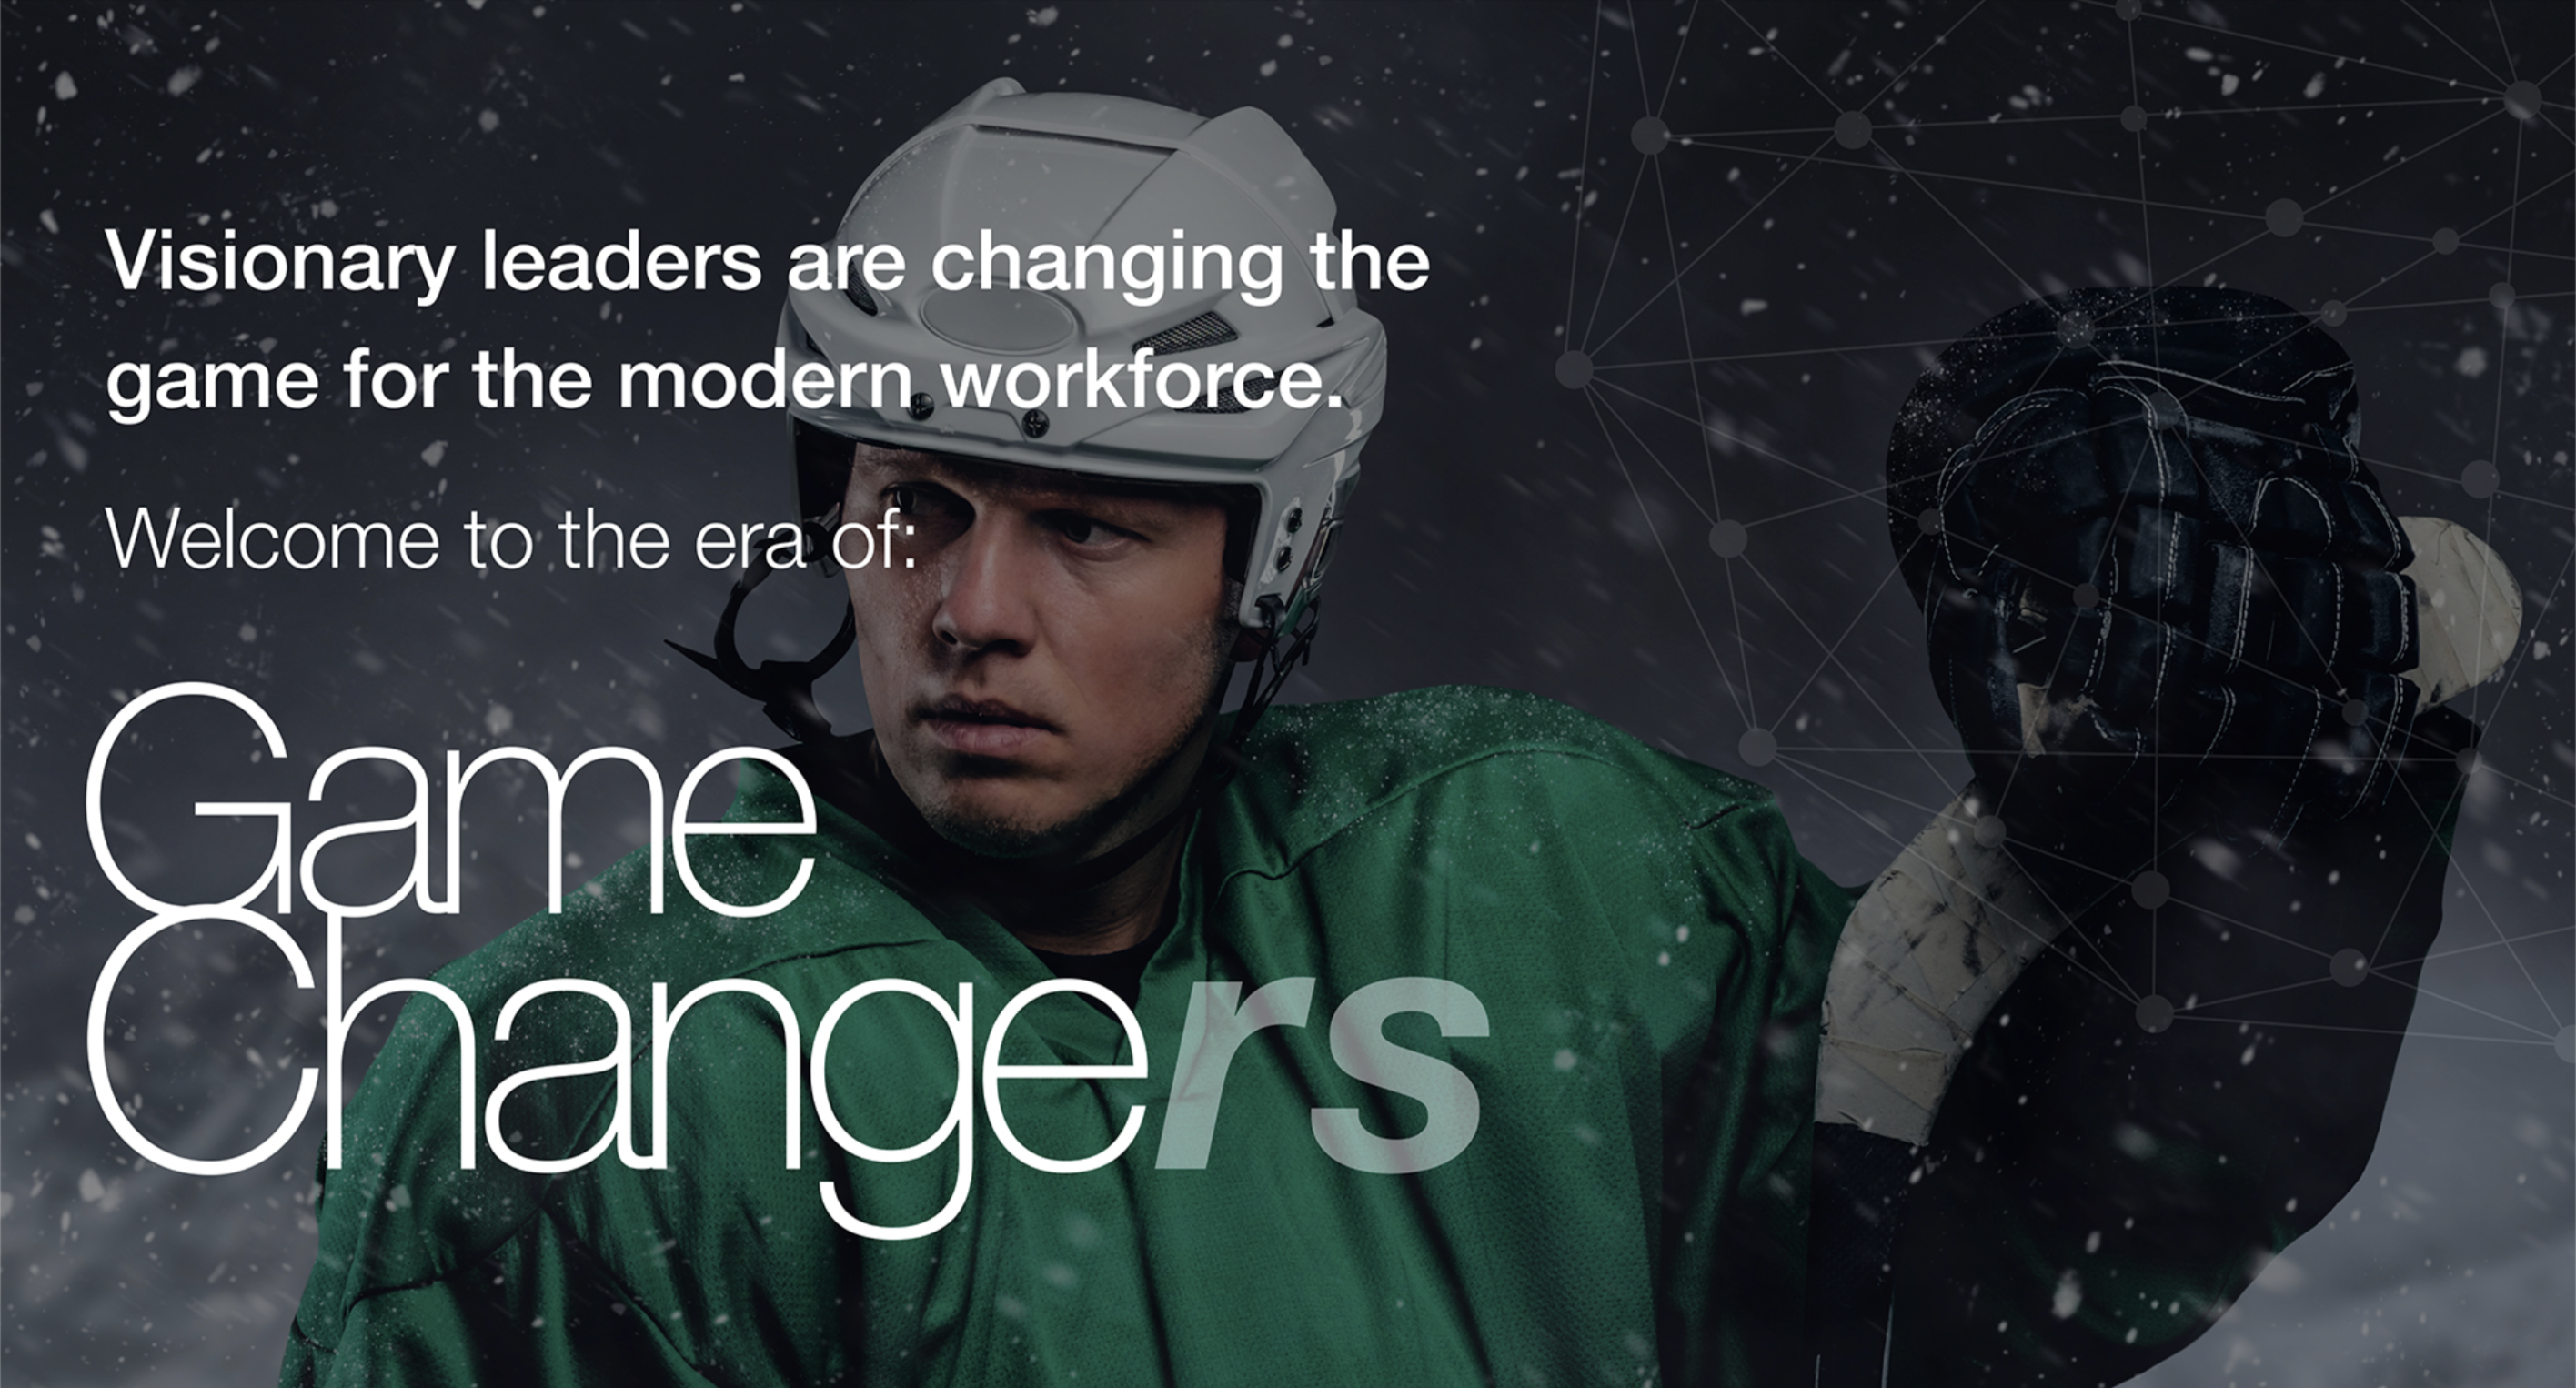 Visionary leaders are changing the game for the modern workforce. Welcome to the era of Game Changers